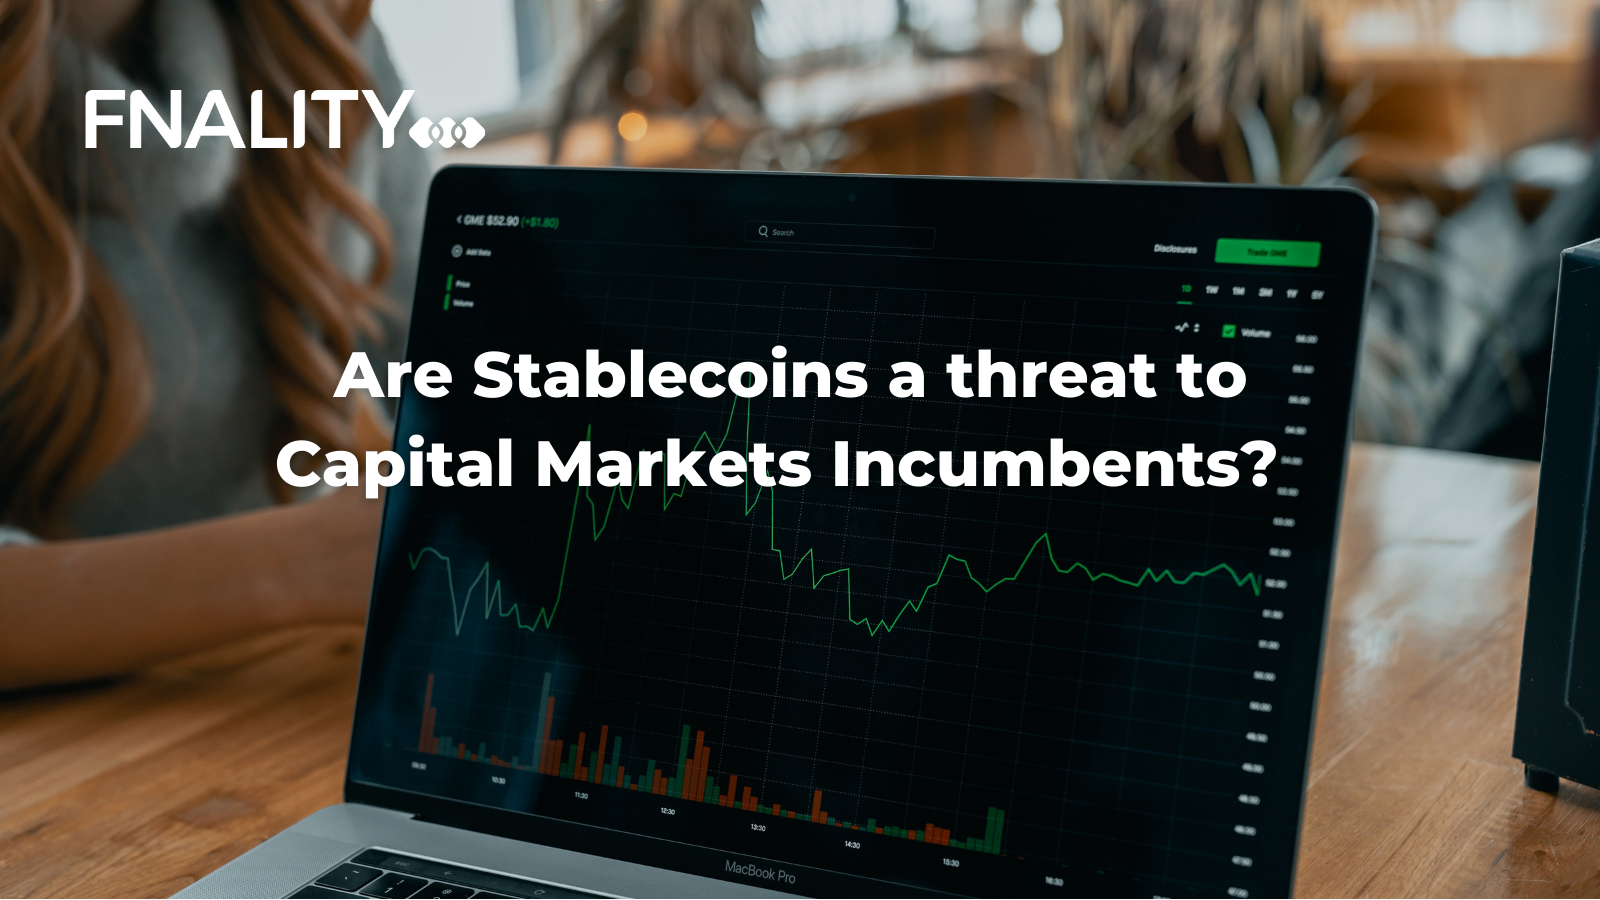 Are Stablecoins a threat to Capital Markets Incumbents